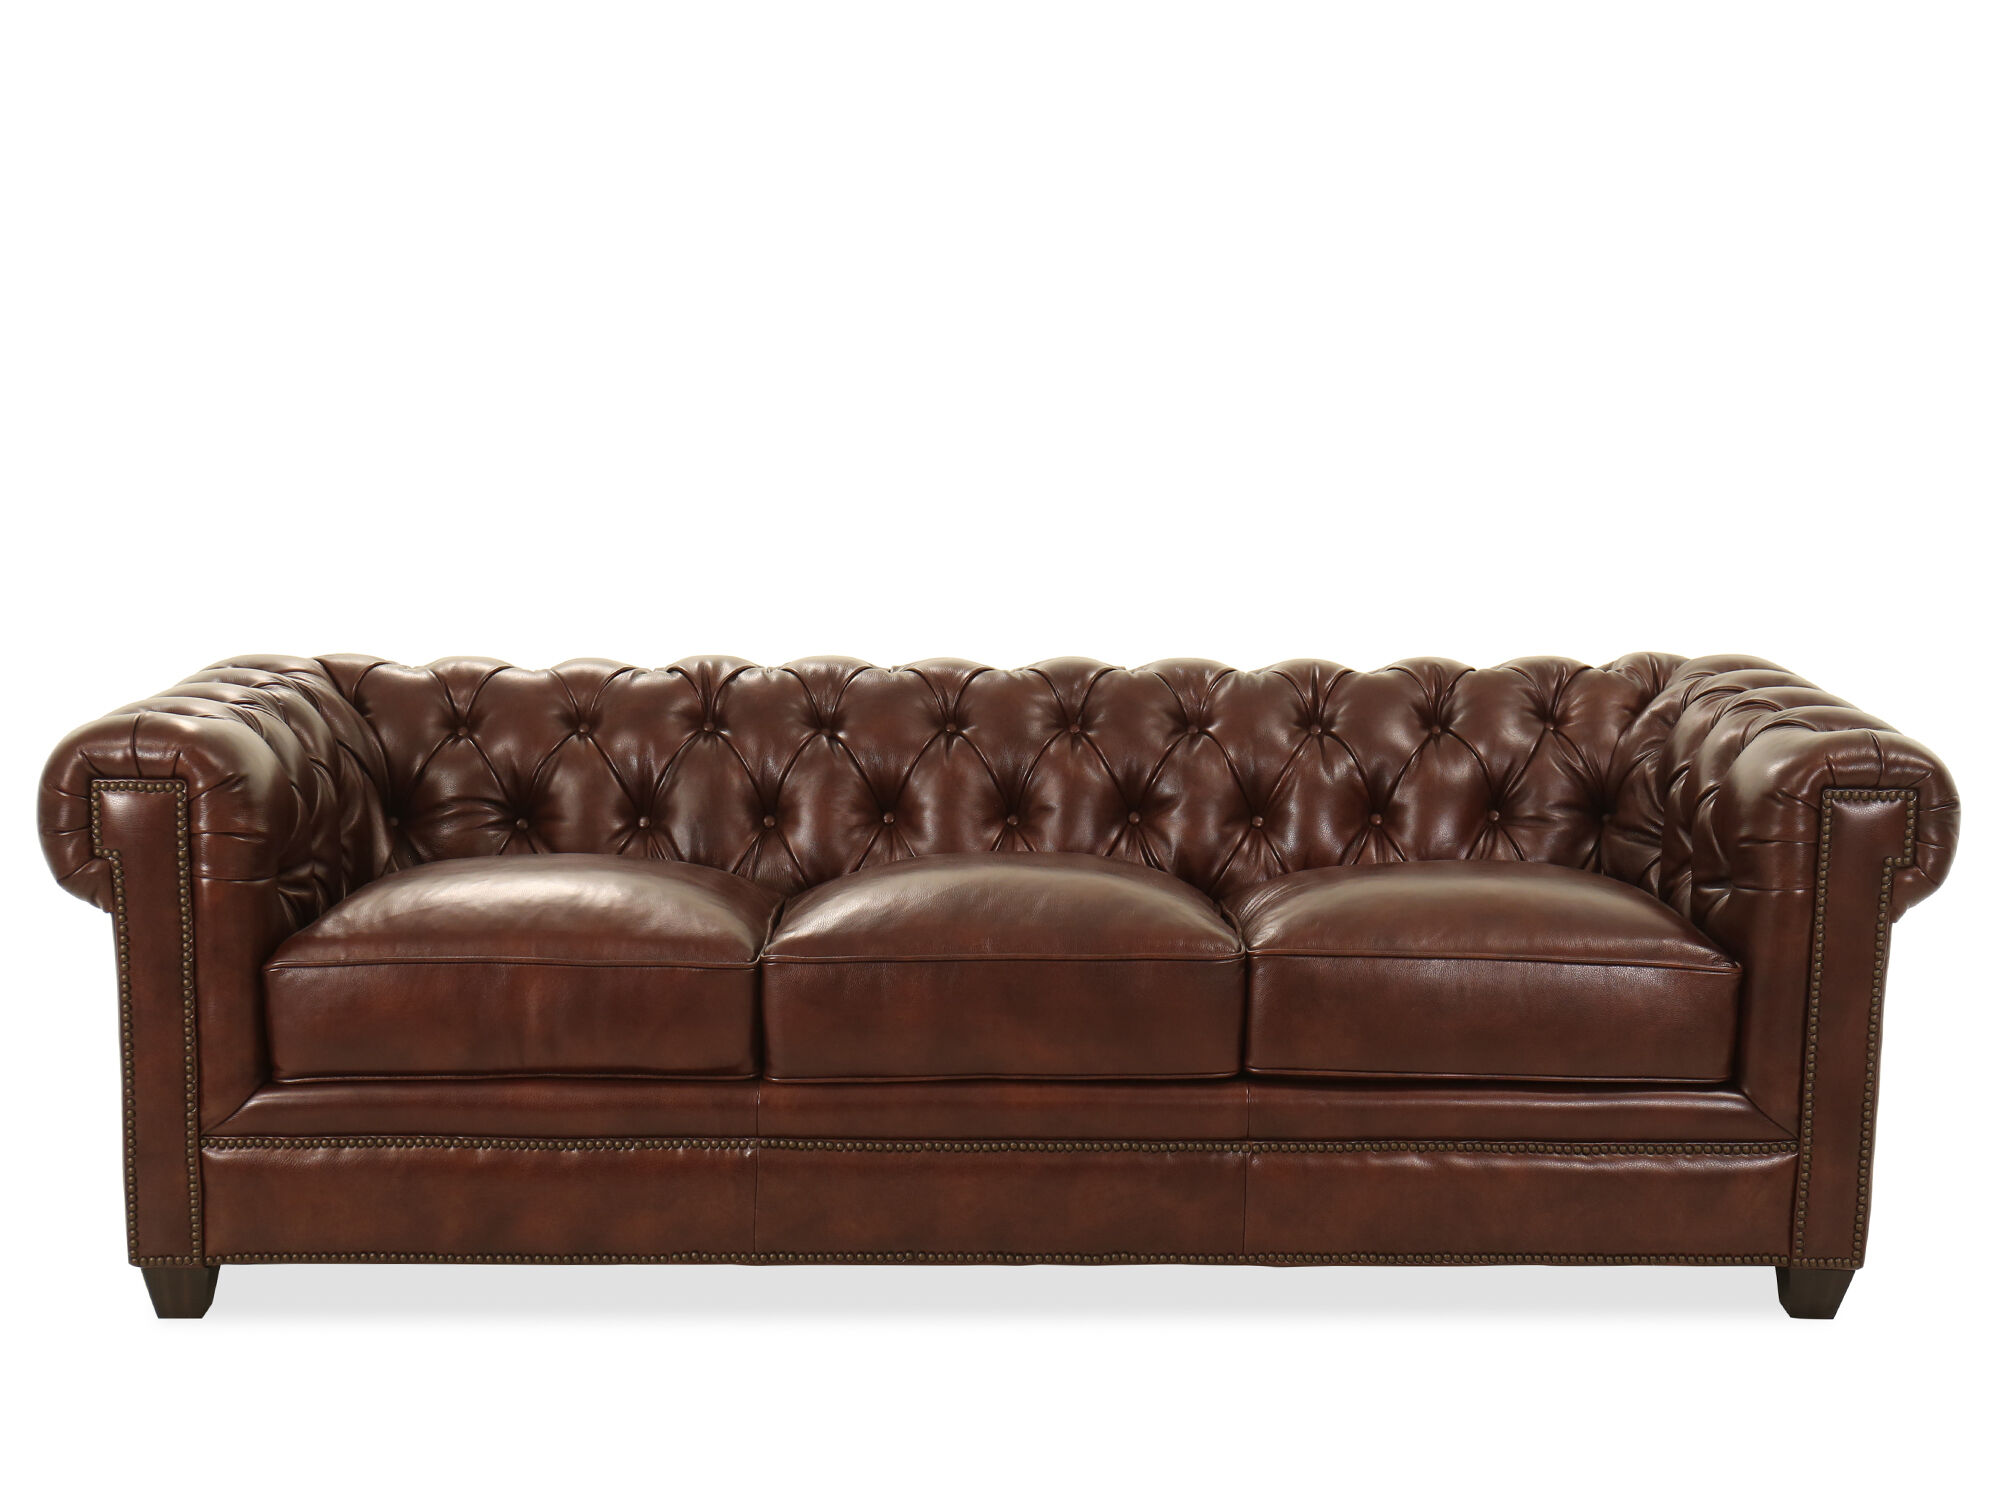 94 Tufted Leather Chesterfield Sofa In Milano Fudge Mathis